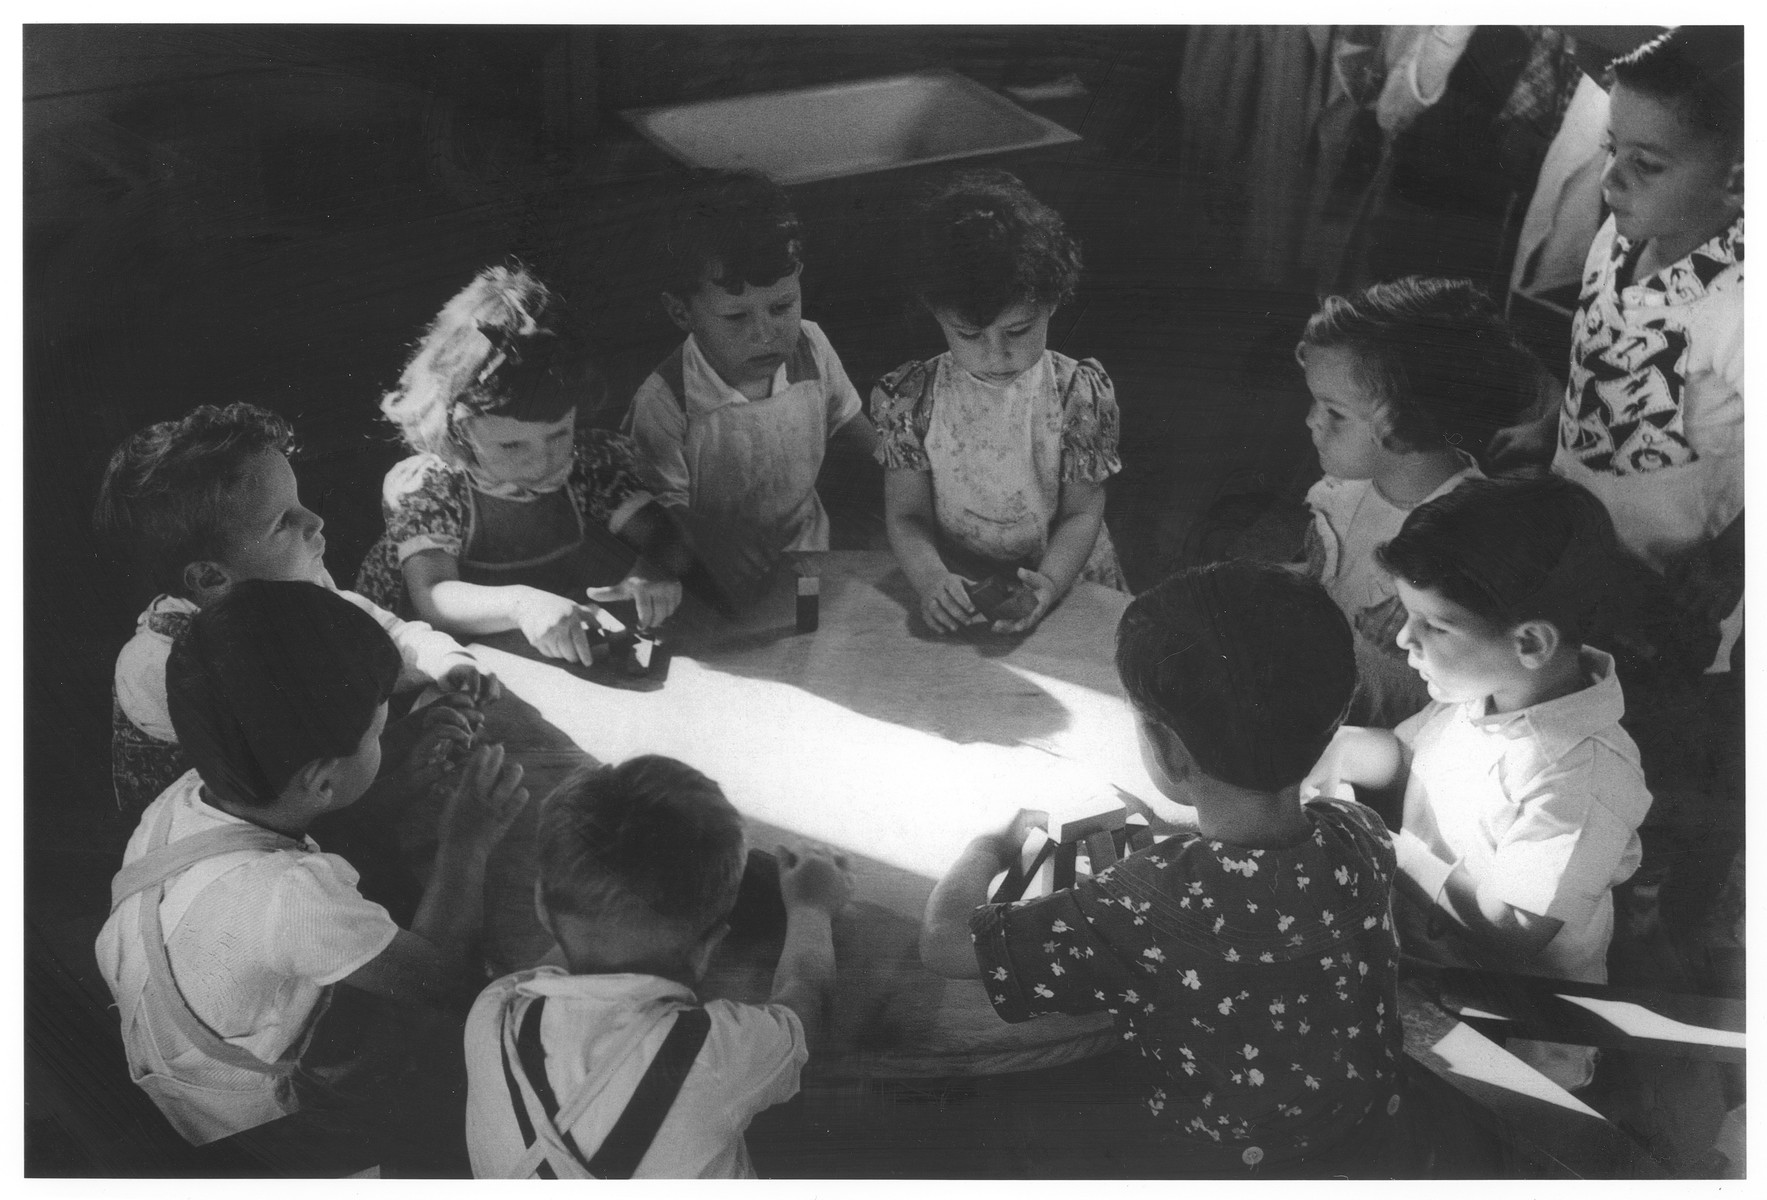 Young children play around a table in the Christobal Colon preschool.  The Christobal Colon school was founded in 1941 by DORSA the Dominican Republic Settlement Association, for the children of Jewish settlers.  The school consisted of two wooden buildings, one for the kindergarten and one for the elementary school.  The curriculum though similar to that of other Dominican schools, also included English and Jewish studies.